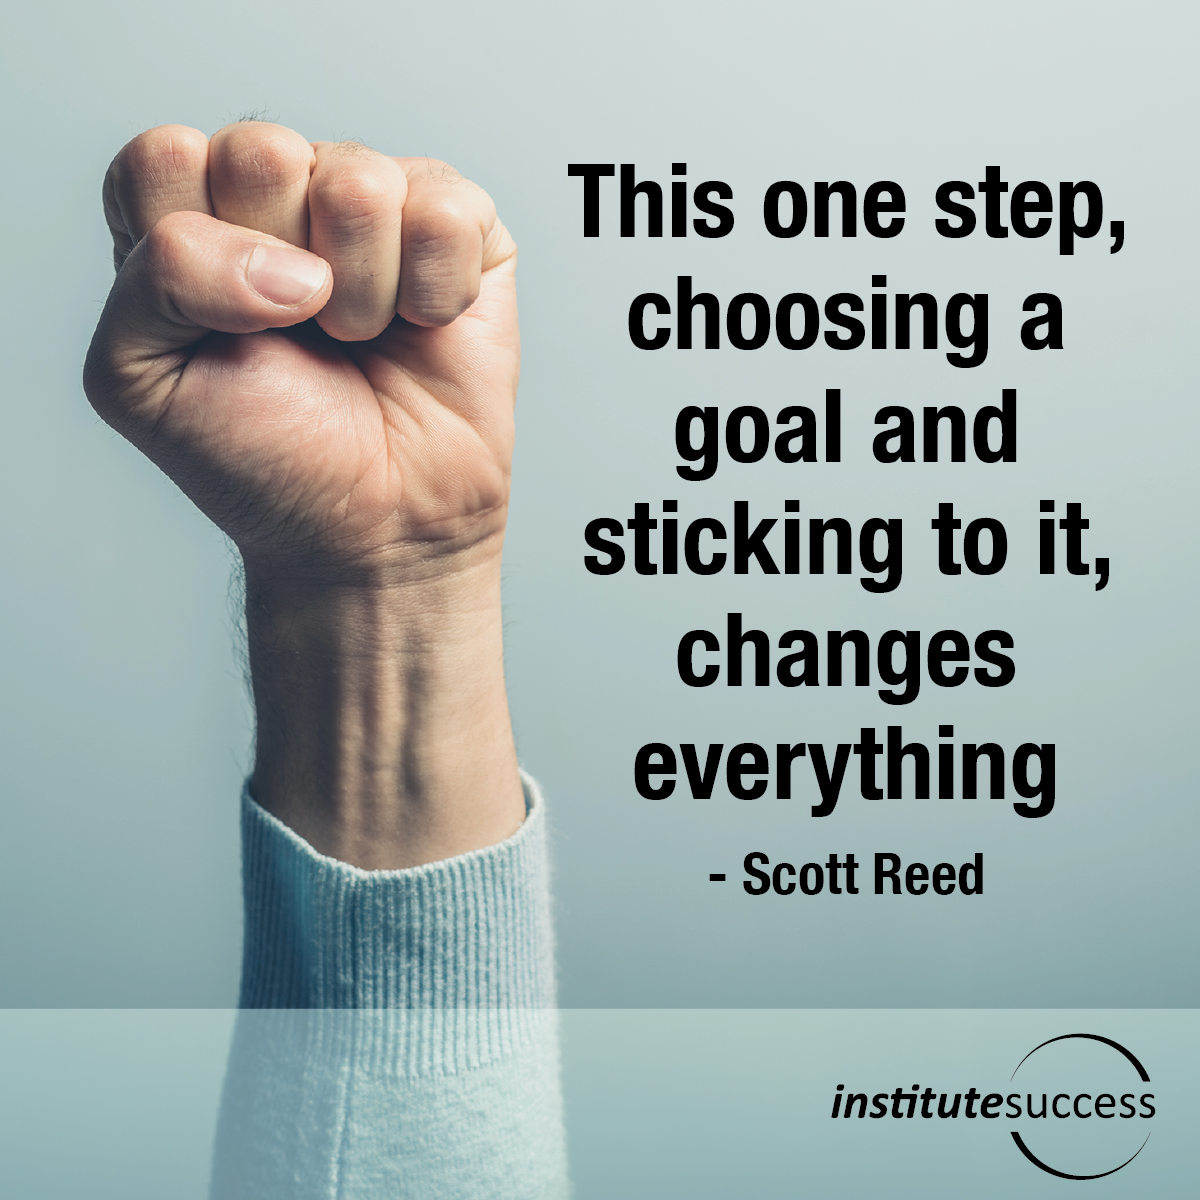 This one step choosing a goal and sticking to it changes everything – Scott Reed